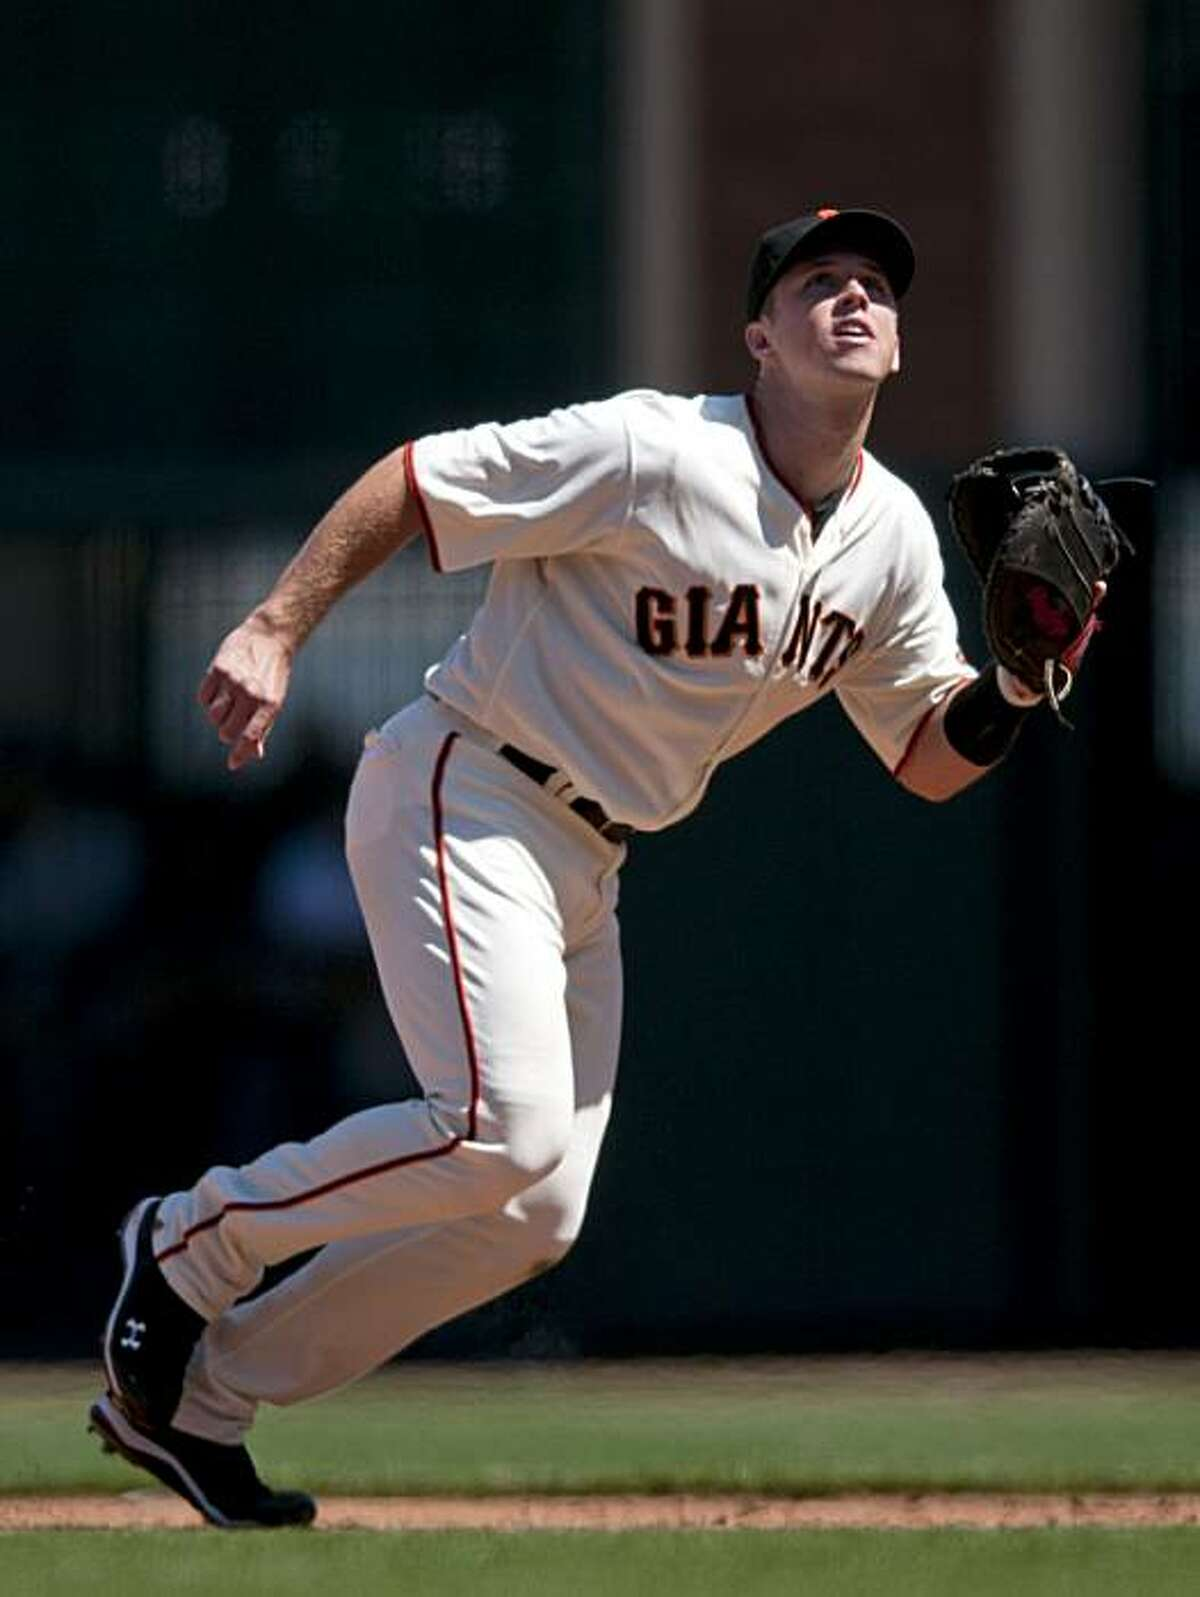 Buster Posey breaks hard to track a foul ball that he caught during the the Giants' 2-1 victory over the Los Angeles Dodgers in San Francisco on Saturday.